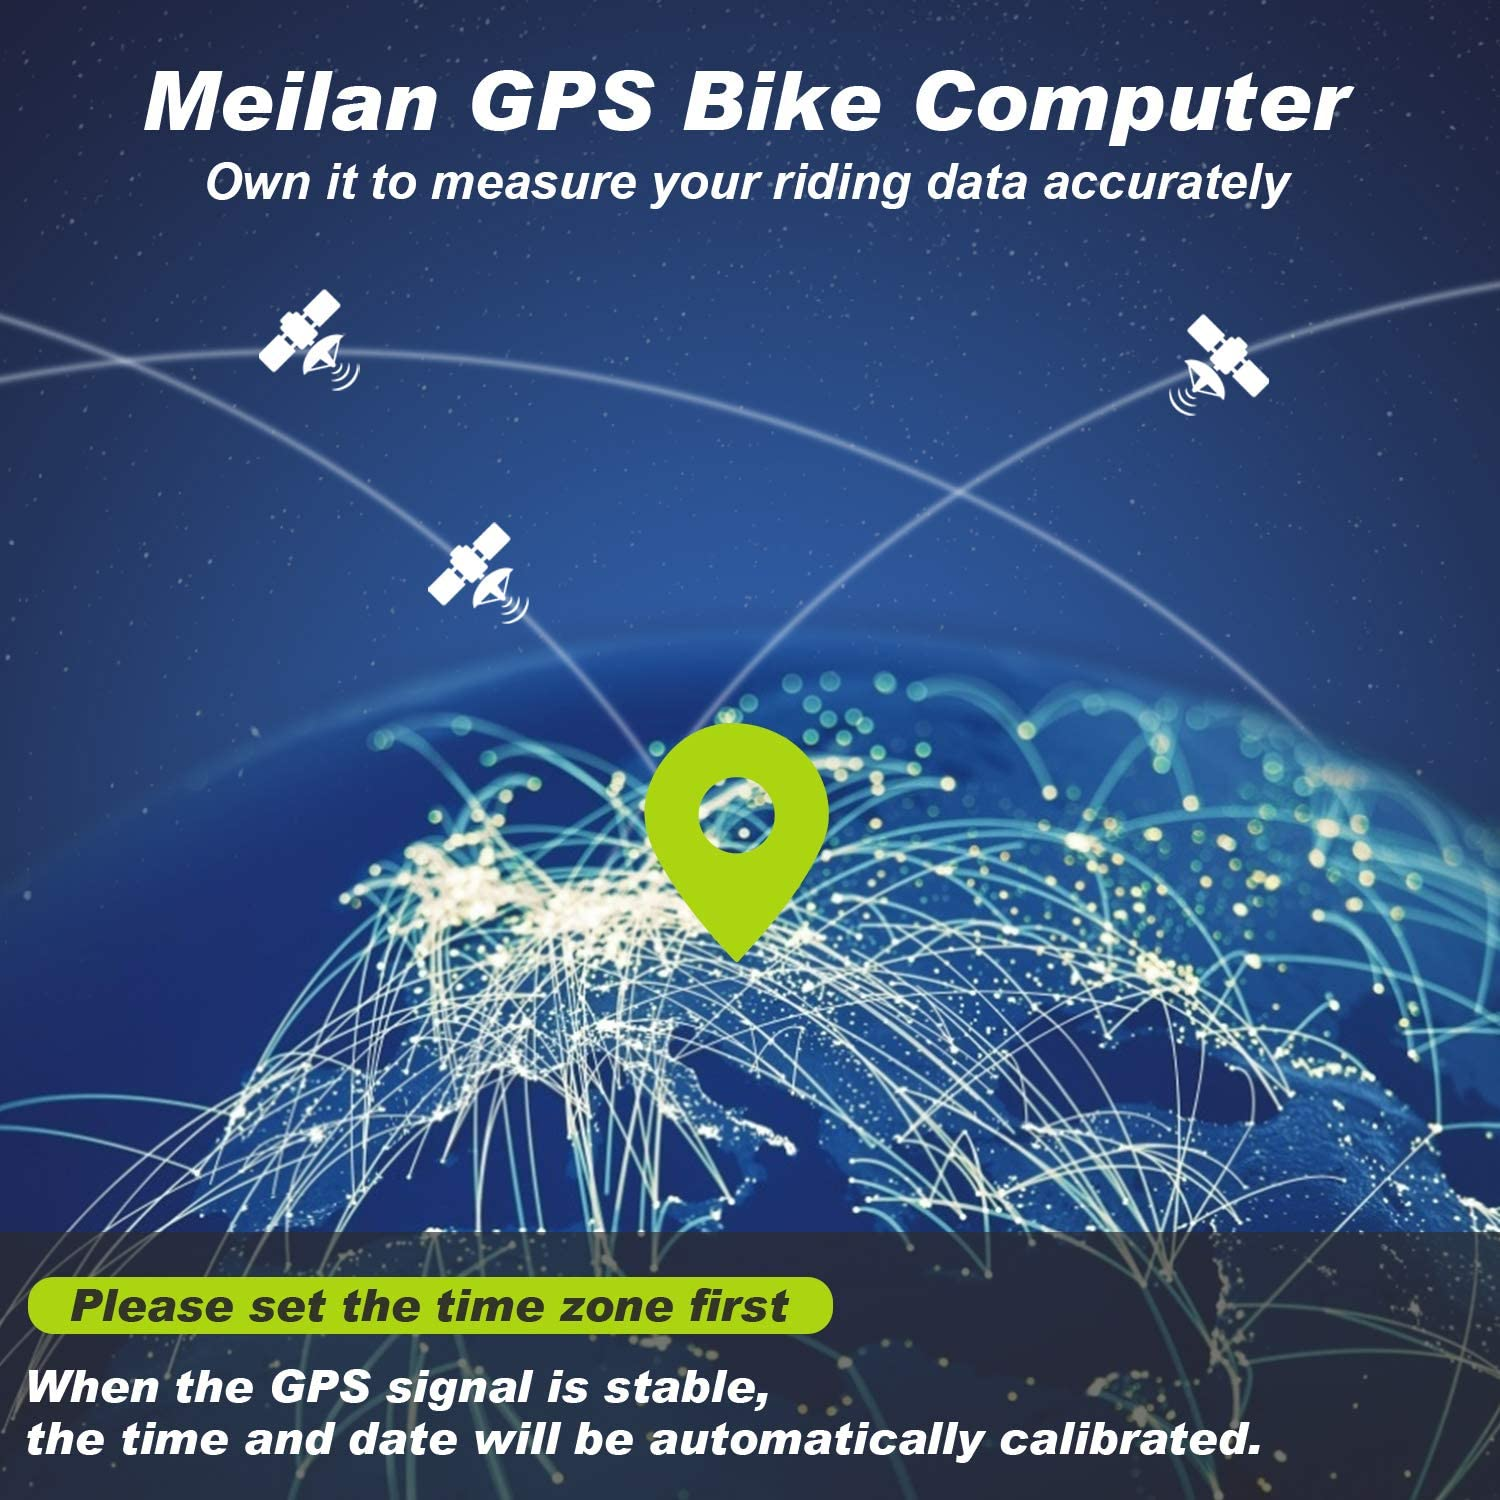 MEILAN M3 Mini GPS Bike Computer, Wireless Bike Odometer and Speedometer Bicycle Computer IPX5 Waterproof Cycling Computer with LCD Display for Outdoor Men Women Teens Bikers : Sports & Outdoors